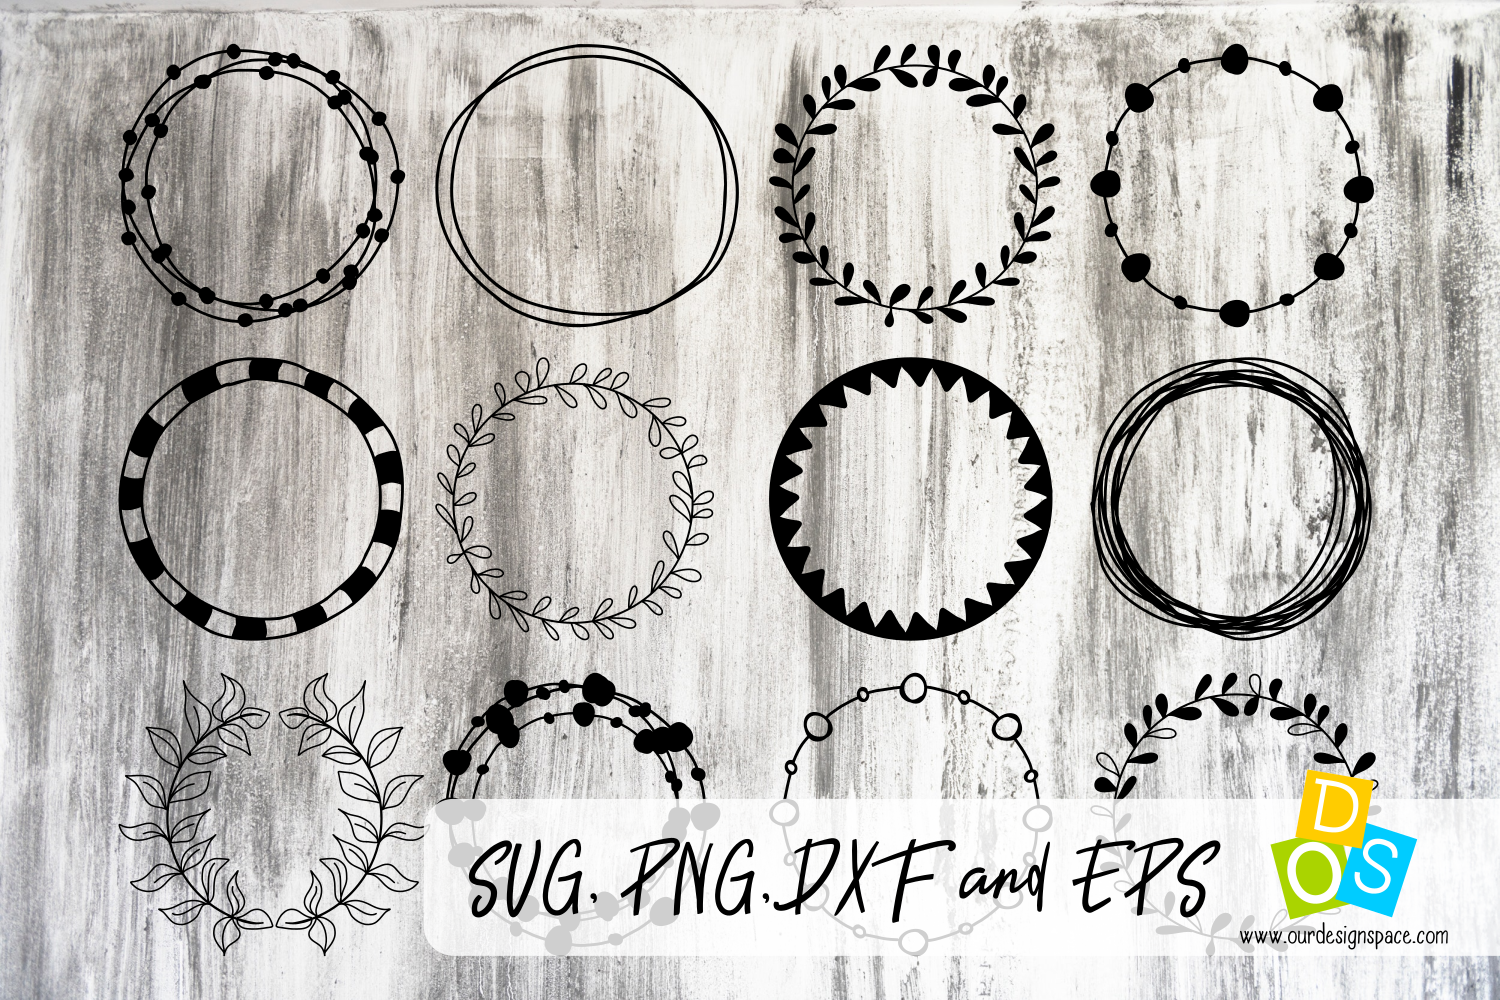 Circle Frames SVG, PNG, DXF and EPS files example image 1